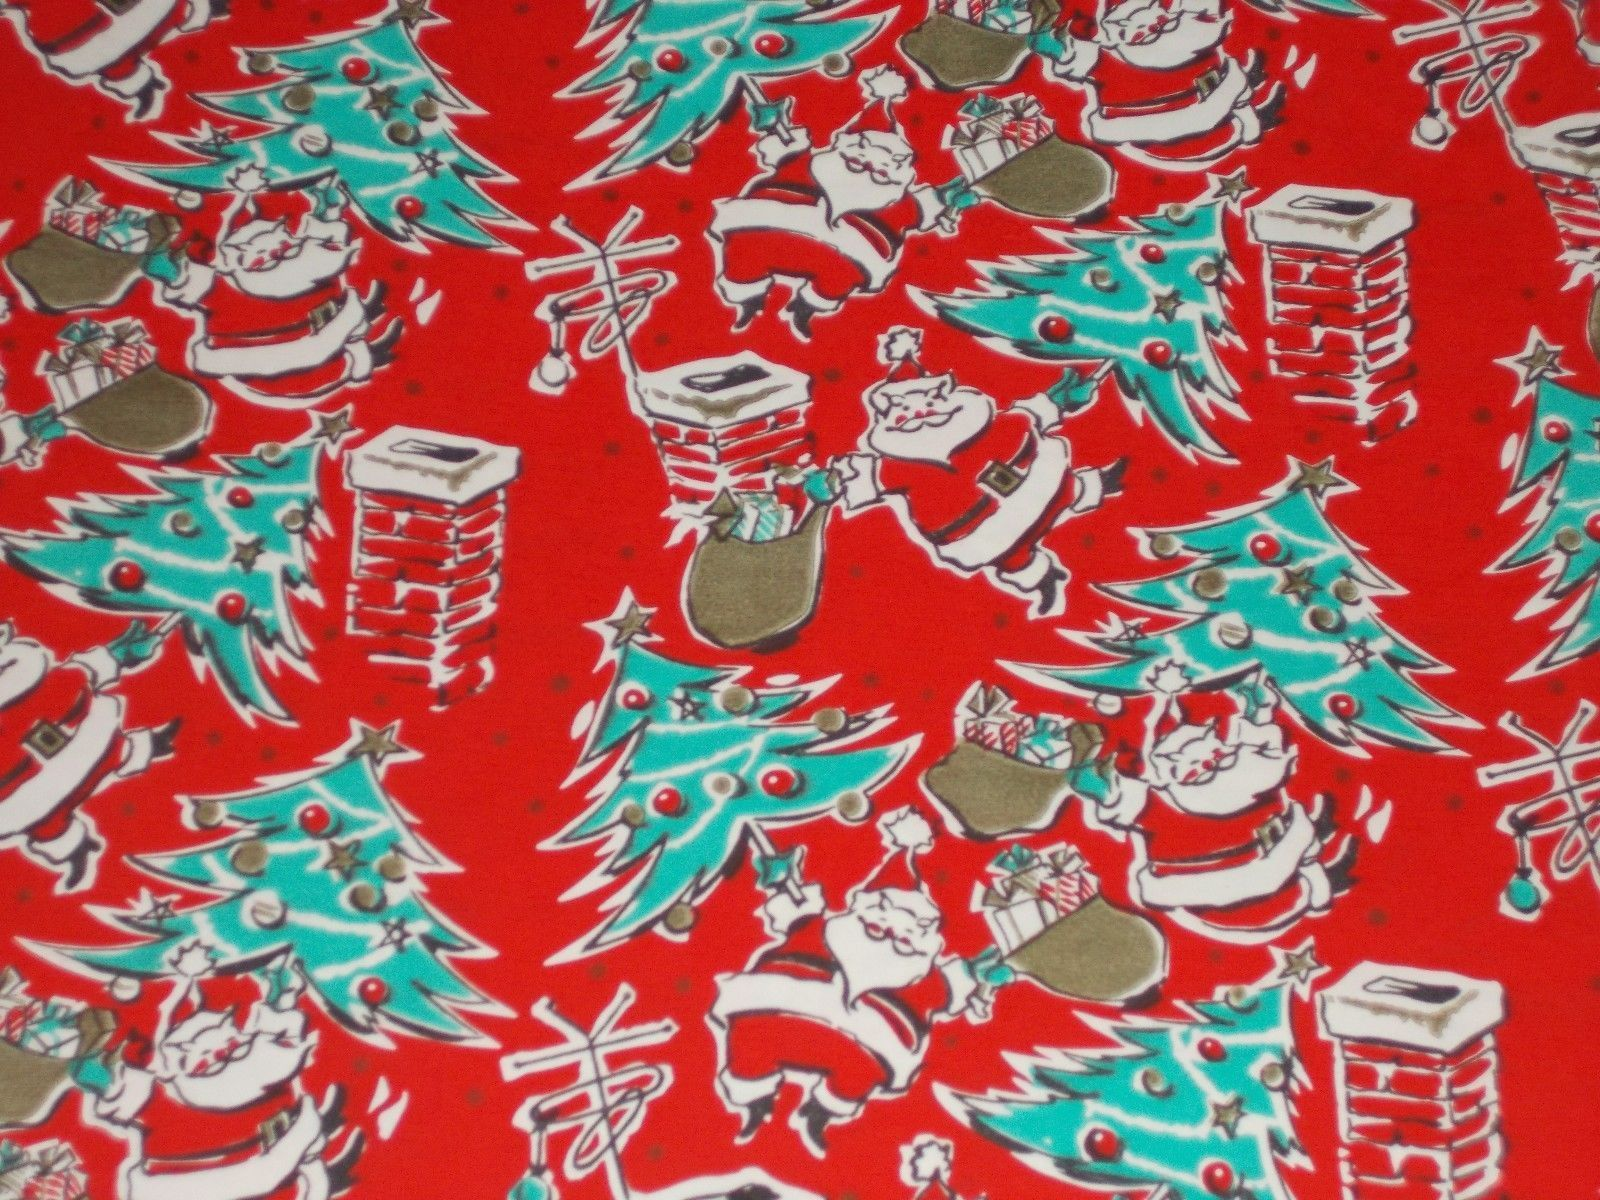 1600x1200 VTG CHRISTMAS WRAPPING PAPER GIFT WRAP MID CENTURY SANTA CLAUS TREE ...